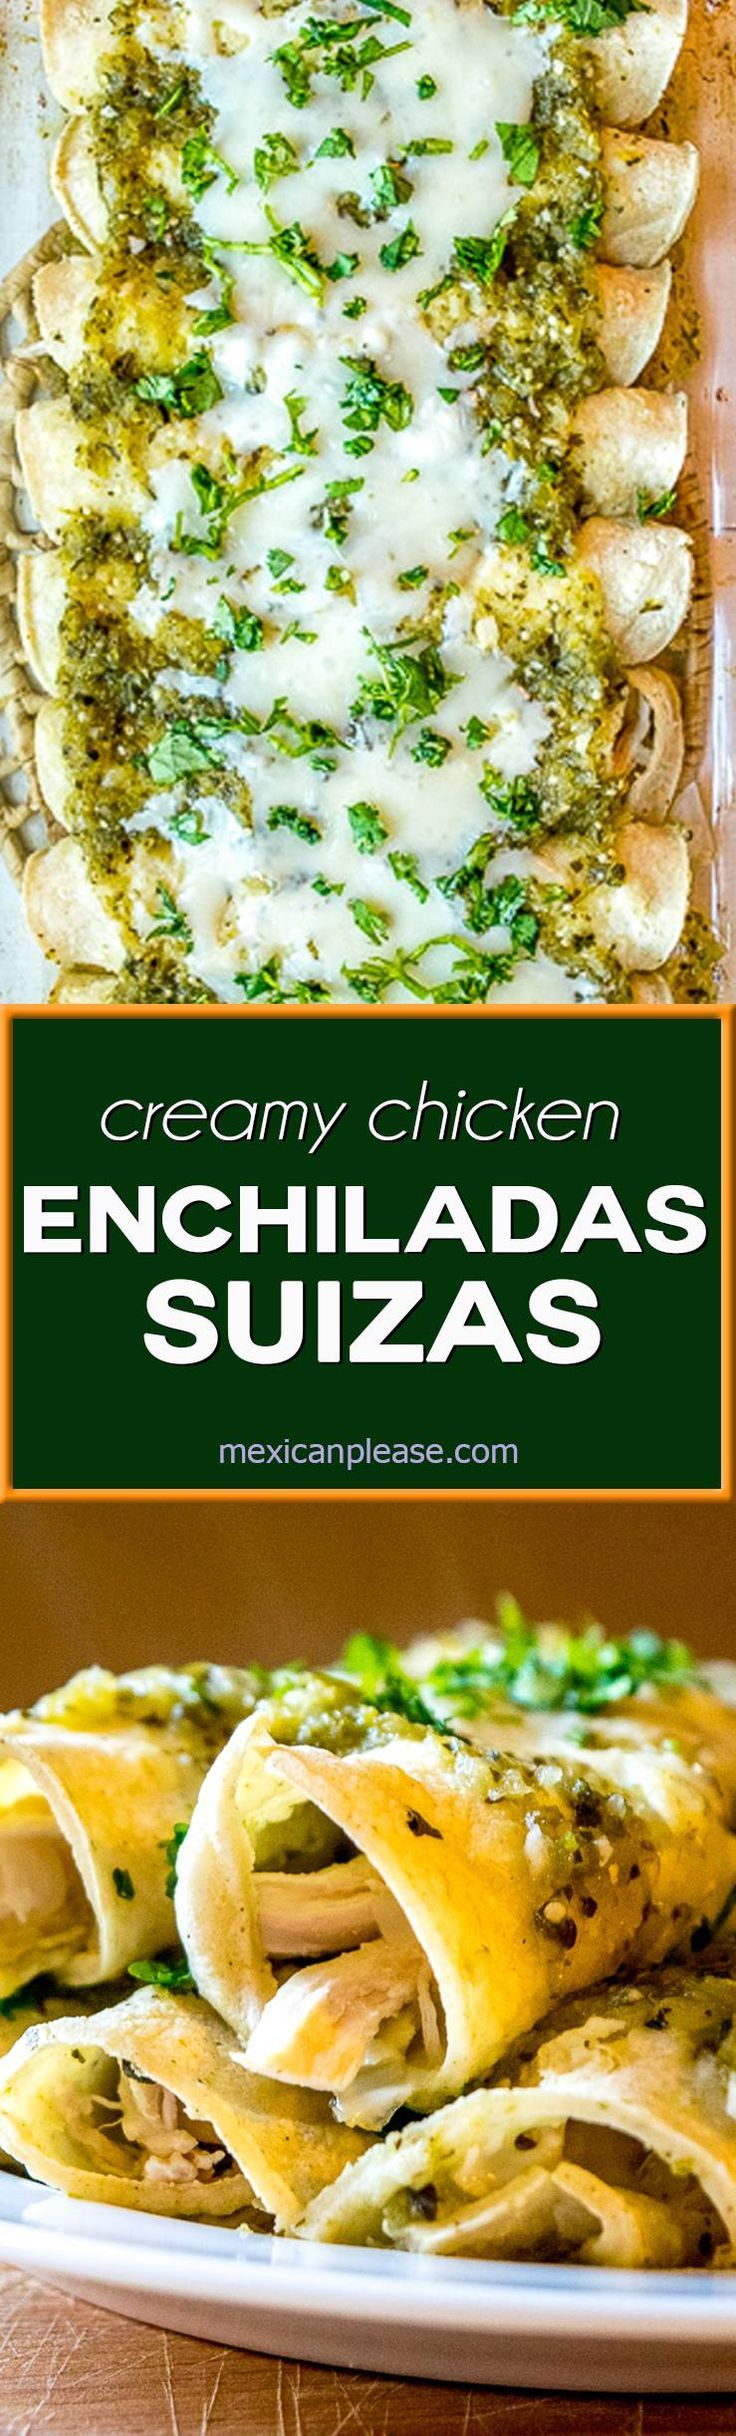 65515 best best food blogger recipes images on pinterest kitchens an authentic version of enchiladas suizas is always at the top of my list forumfinder Gallery